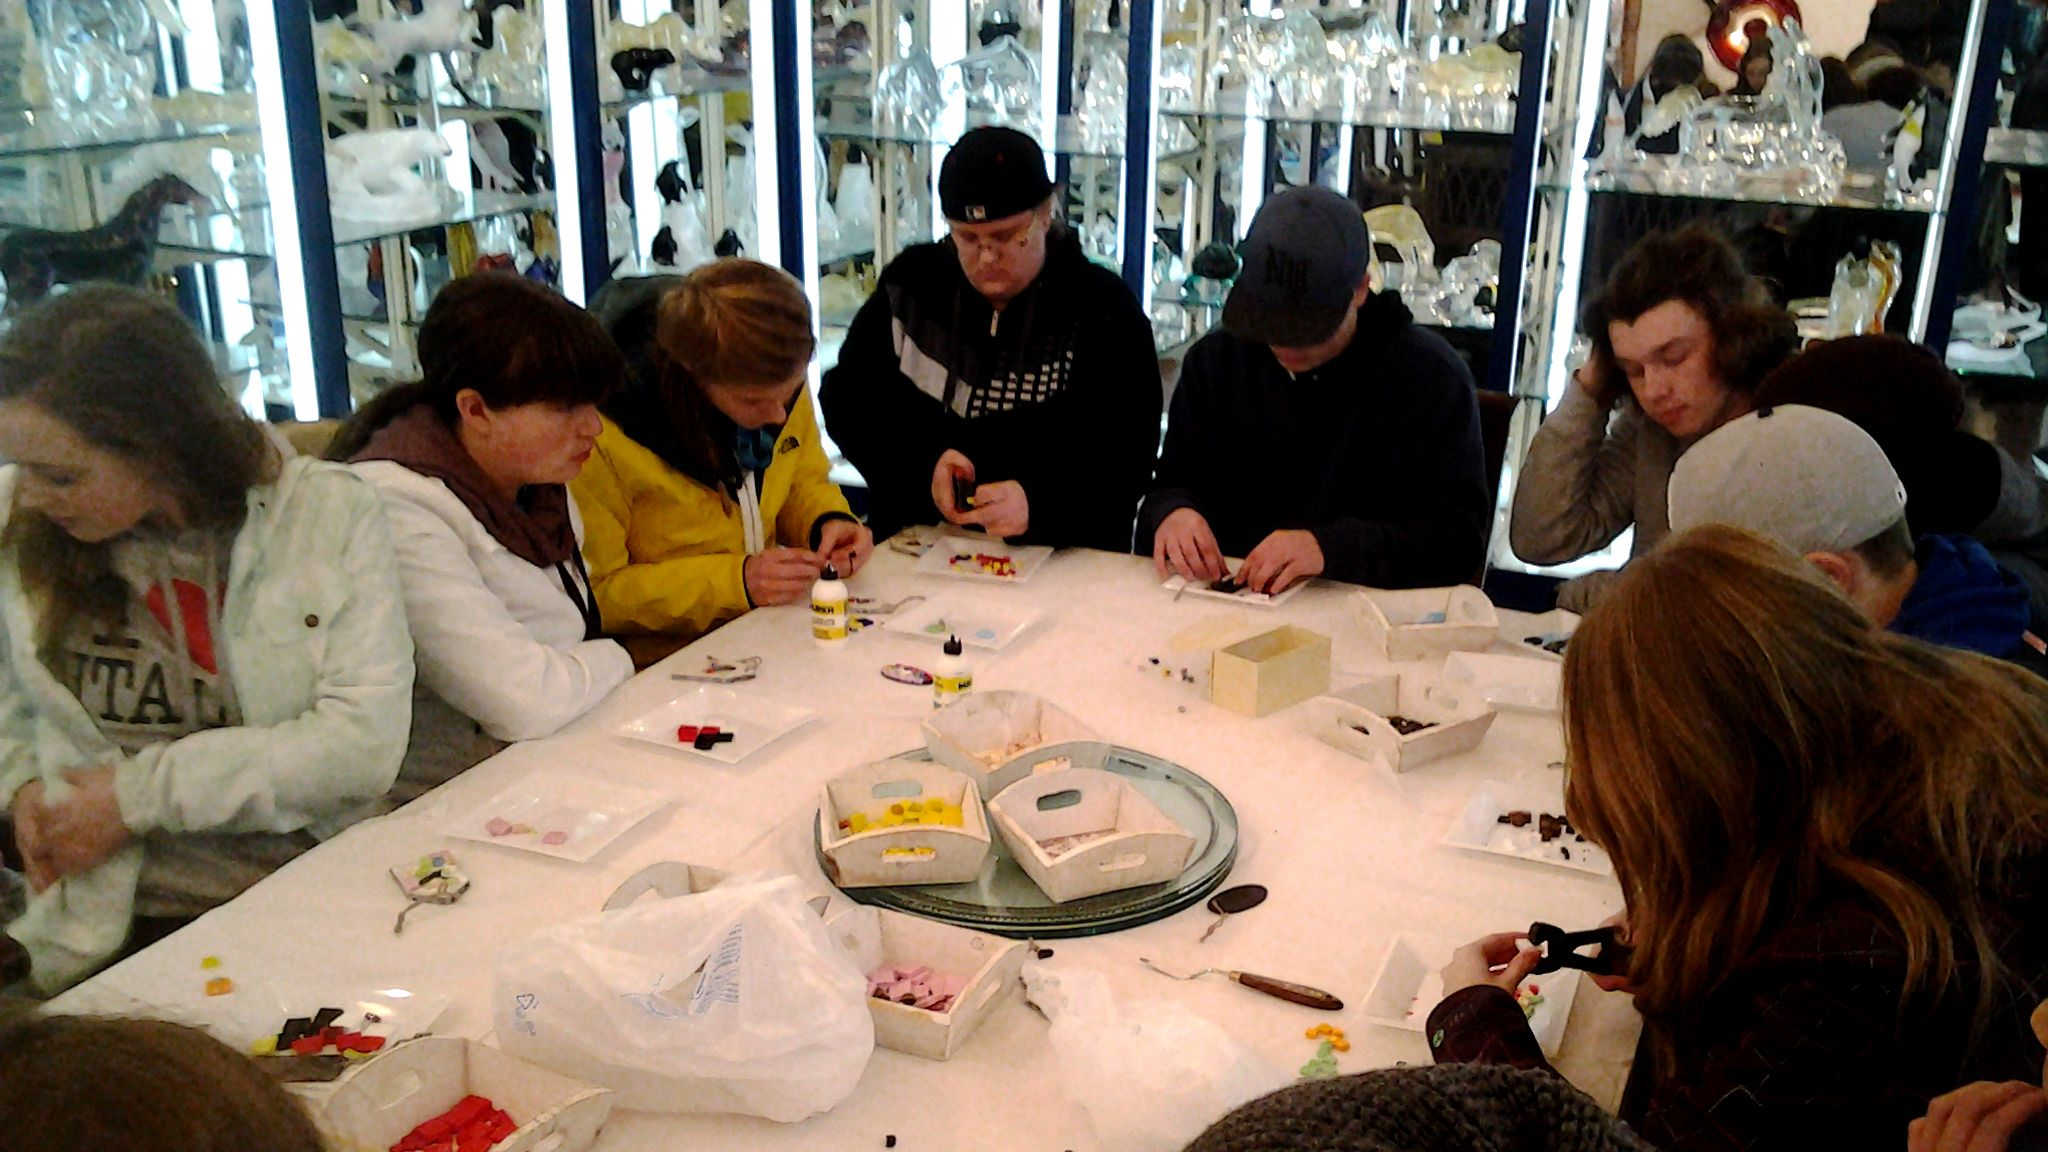 Group of tourists sit around a table and assemble crafts for glass blowing